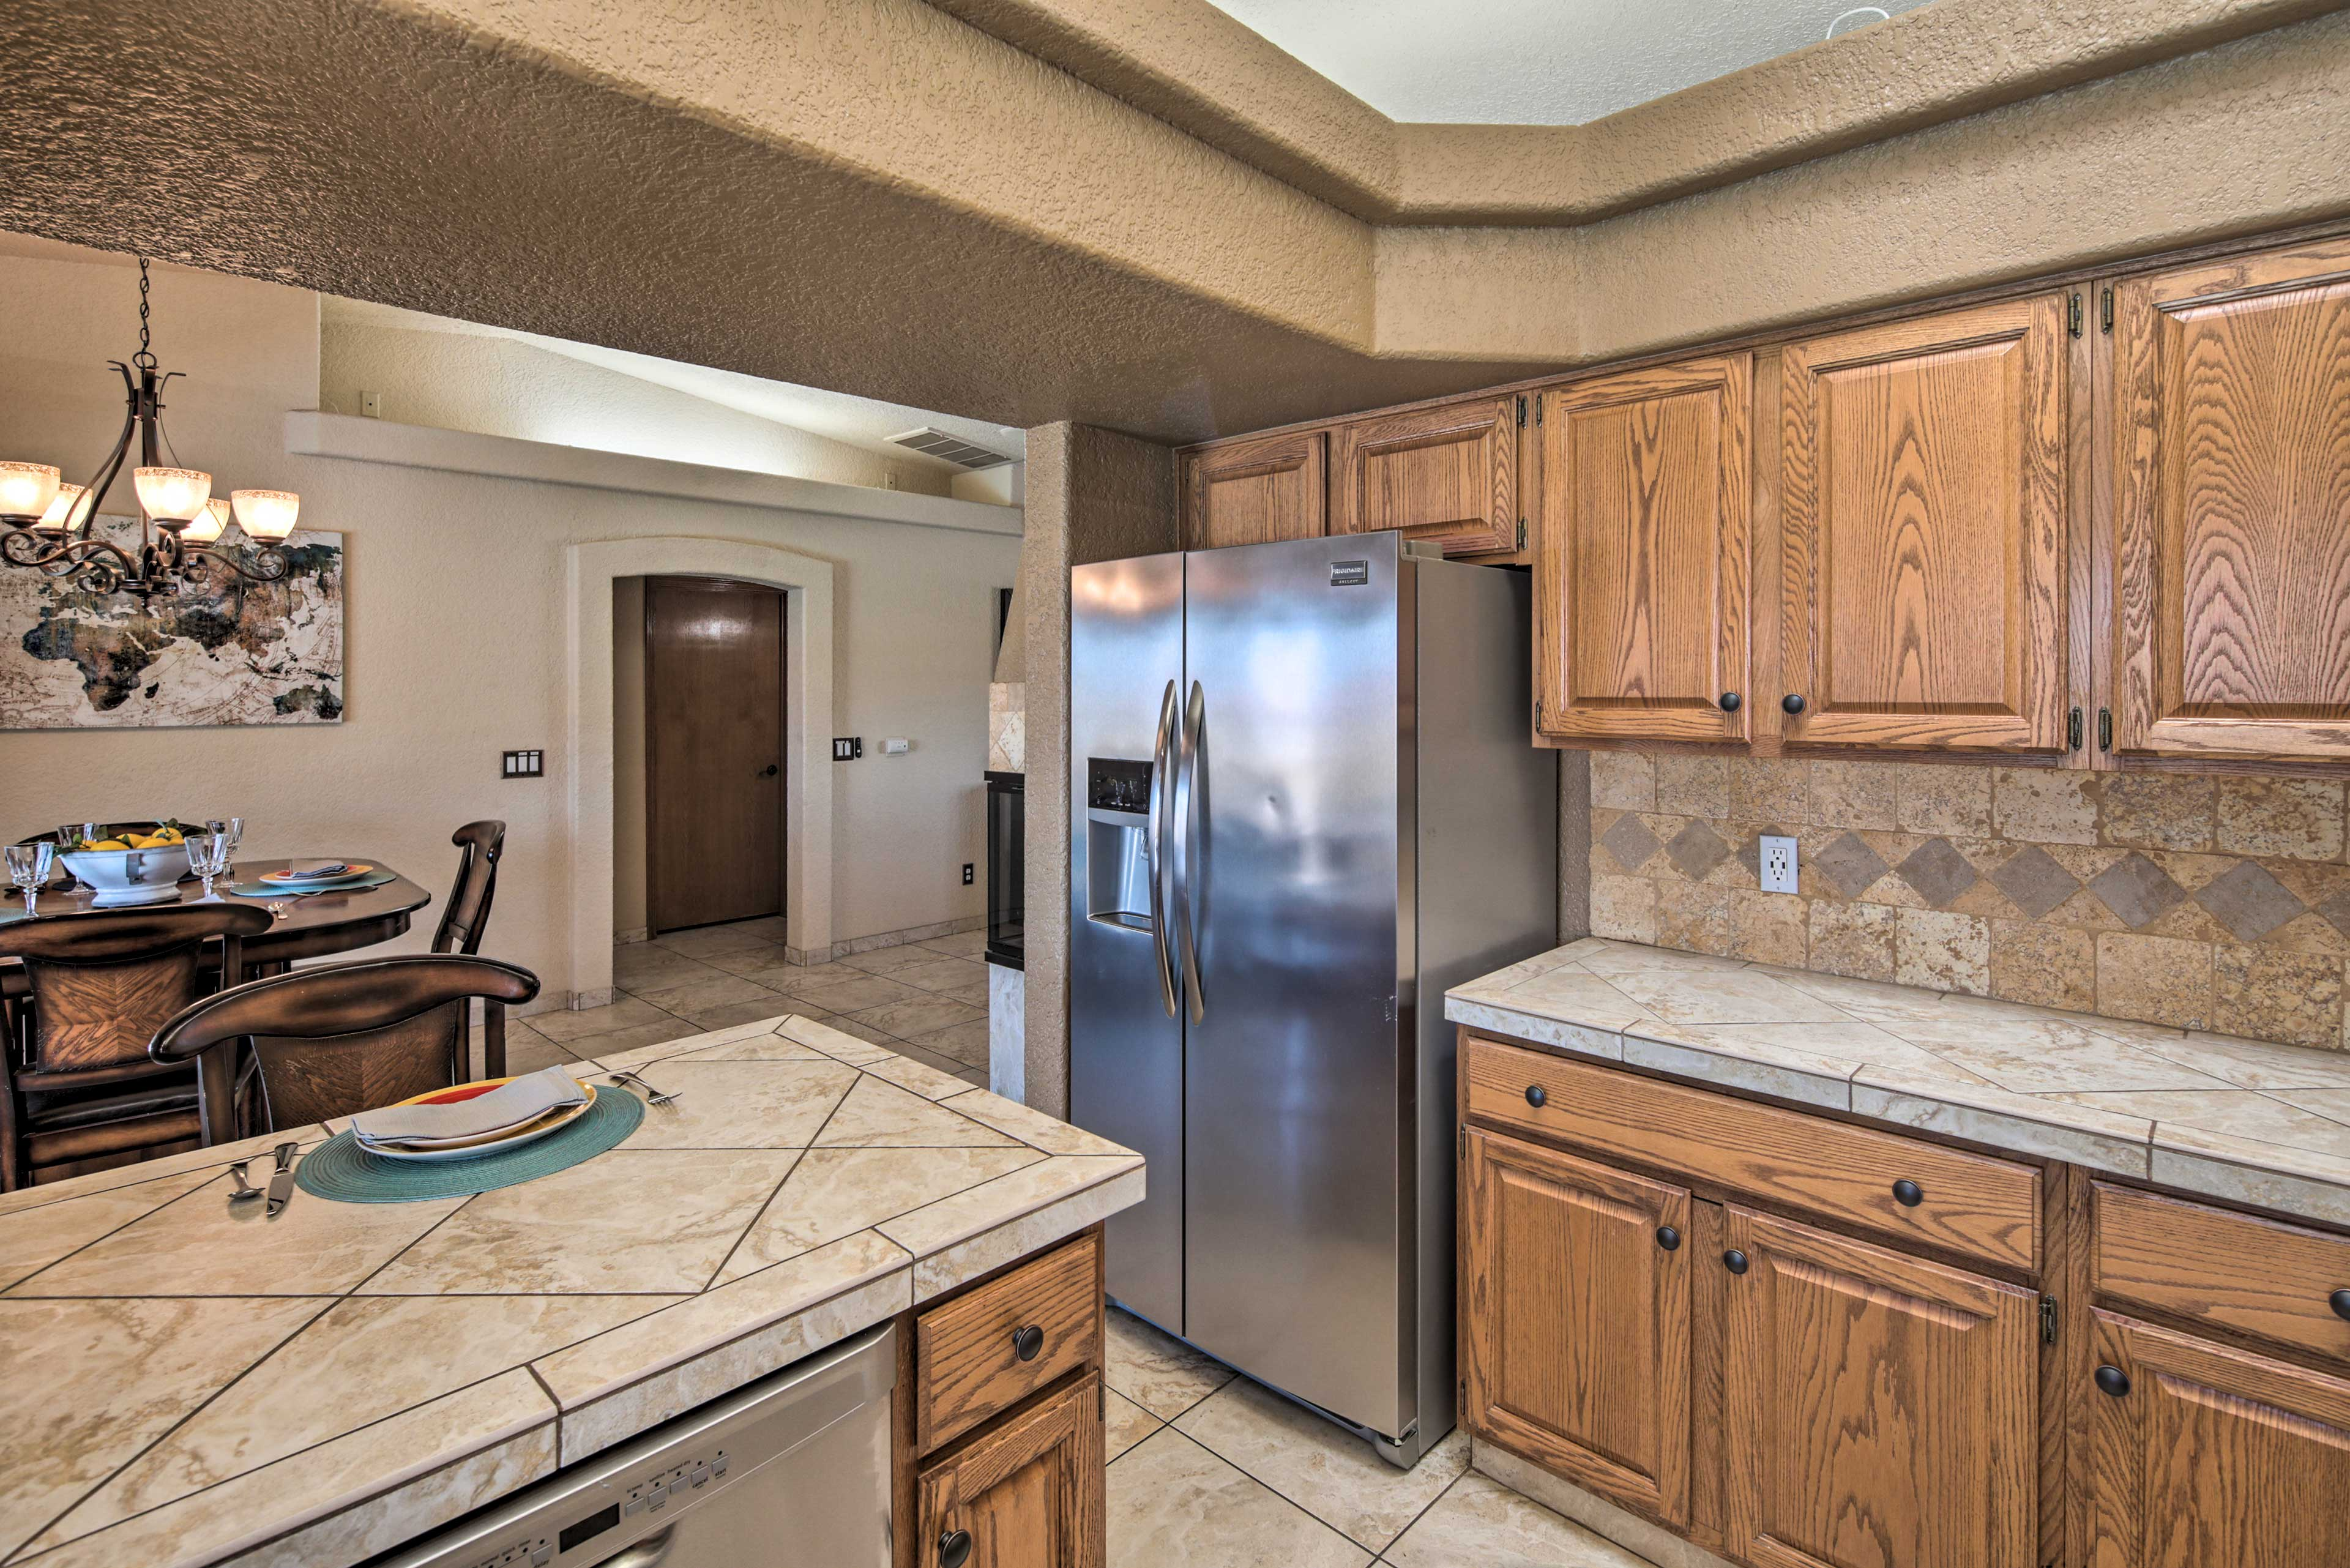 Stainless steel appliances elevate the cooking space.